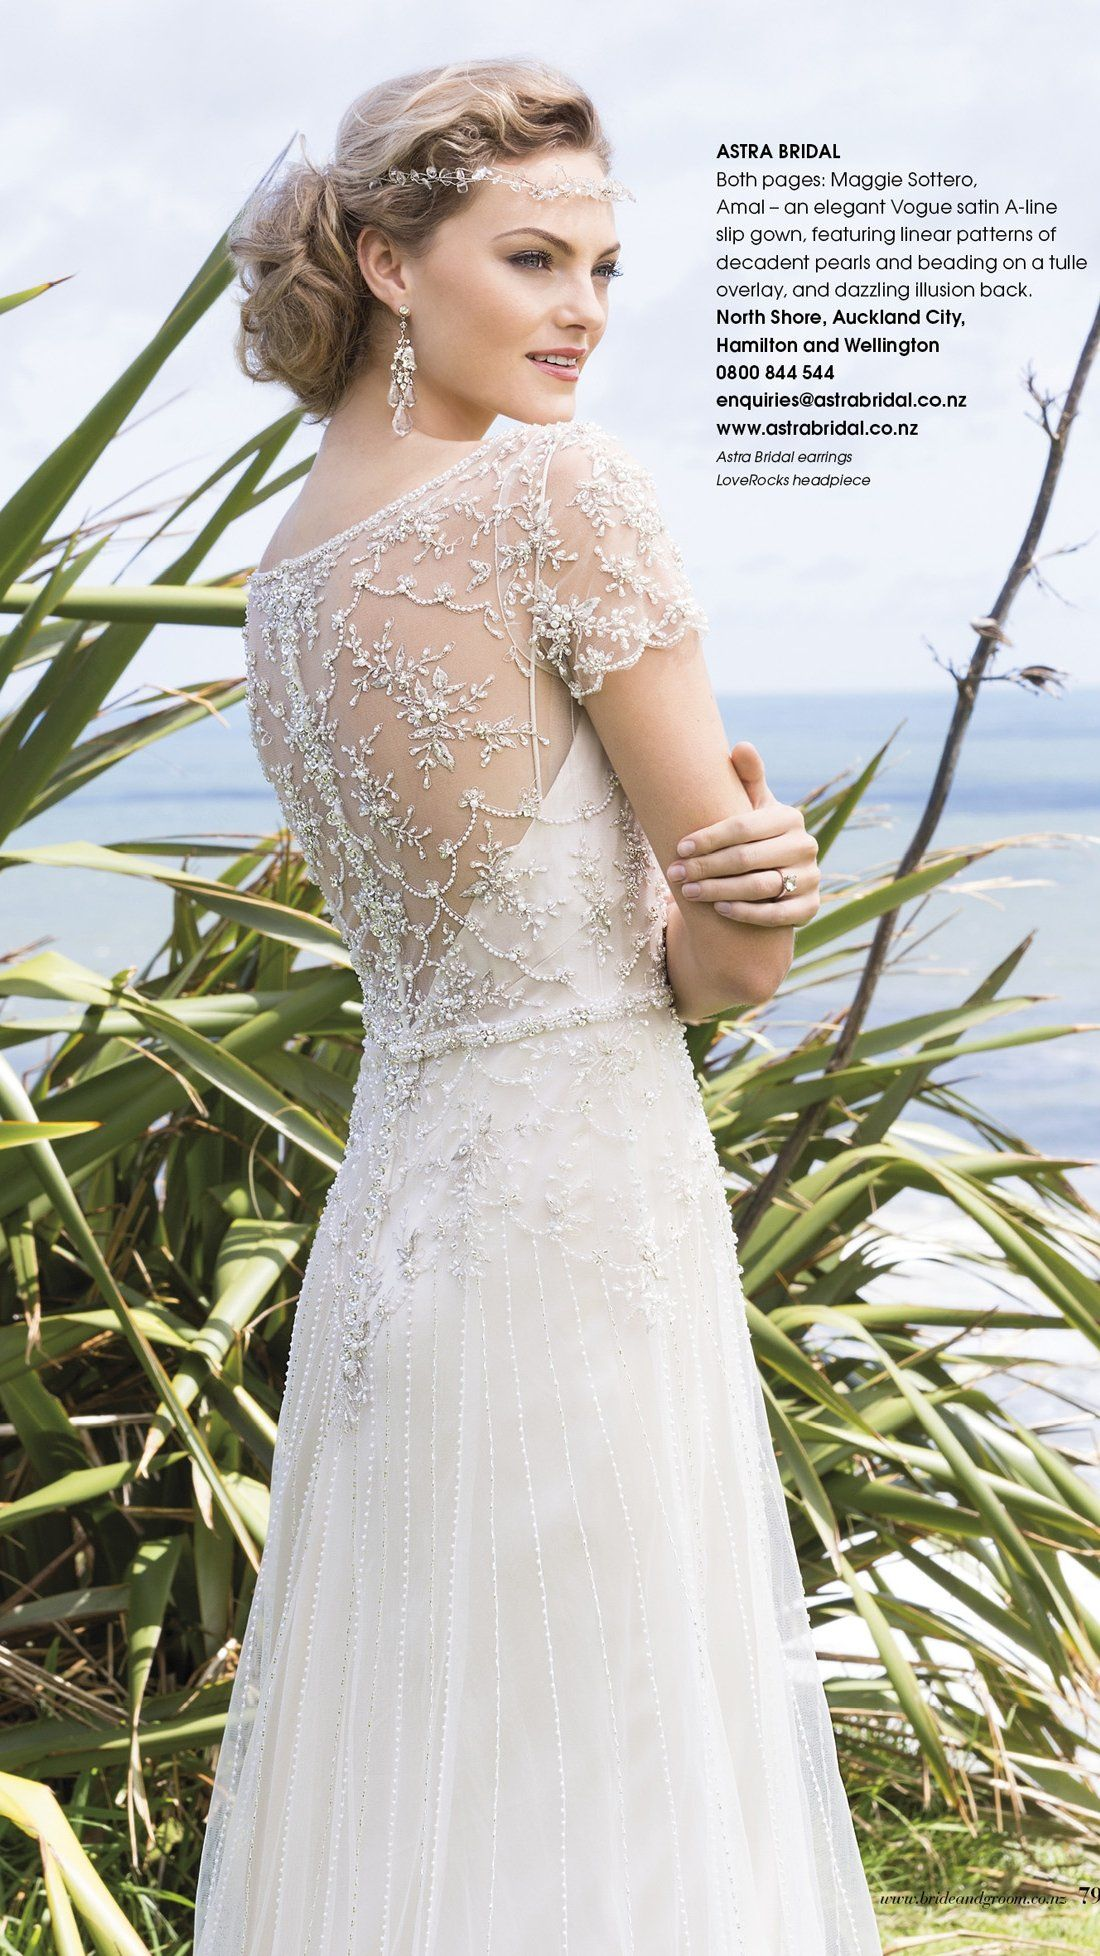 328697cf993 On location with Bride and Groom Magazine in 2019